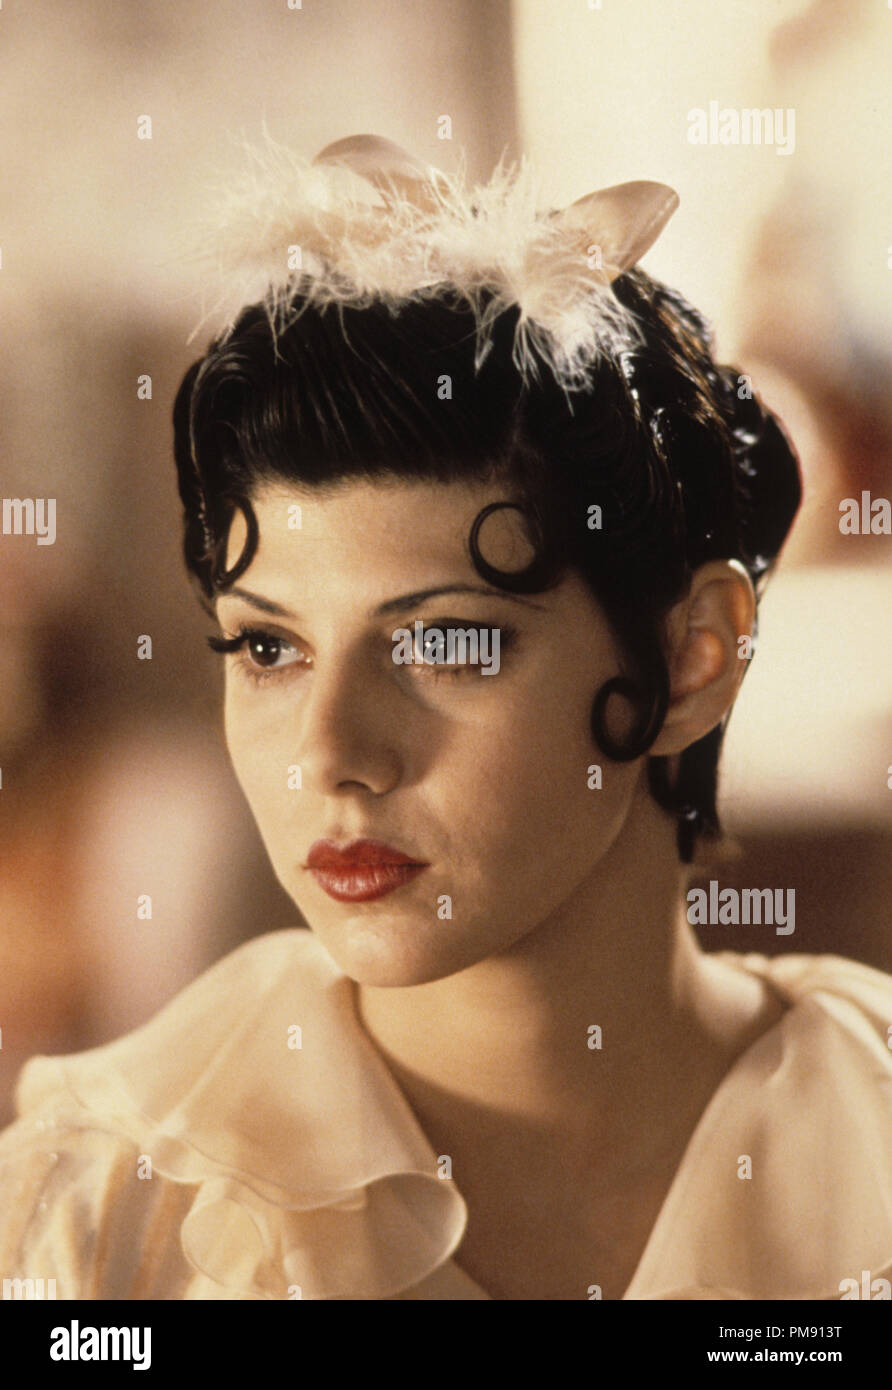 Film still or Publicity still from 'Oscar' Marisa Tomei © 1991 Touchstone Pictures Photo Credit: Sam Emerson   All Rights Reserved   File Reference # 31527068THA  For Editorial Use Only - Stock Image